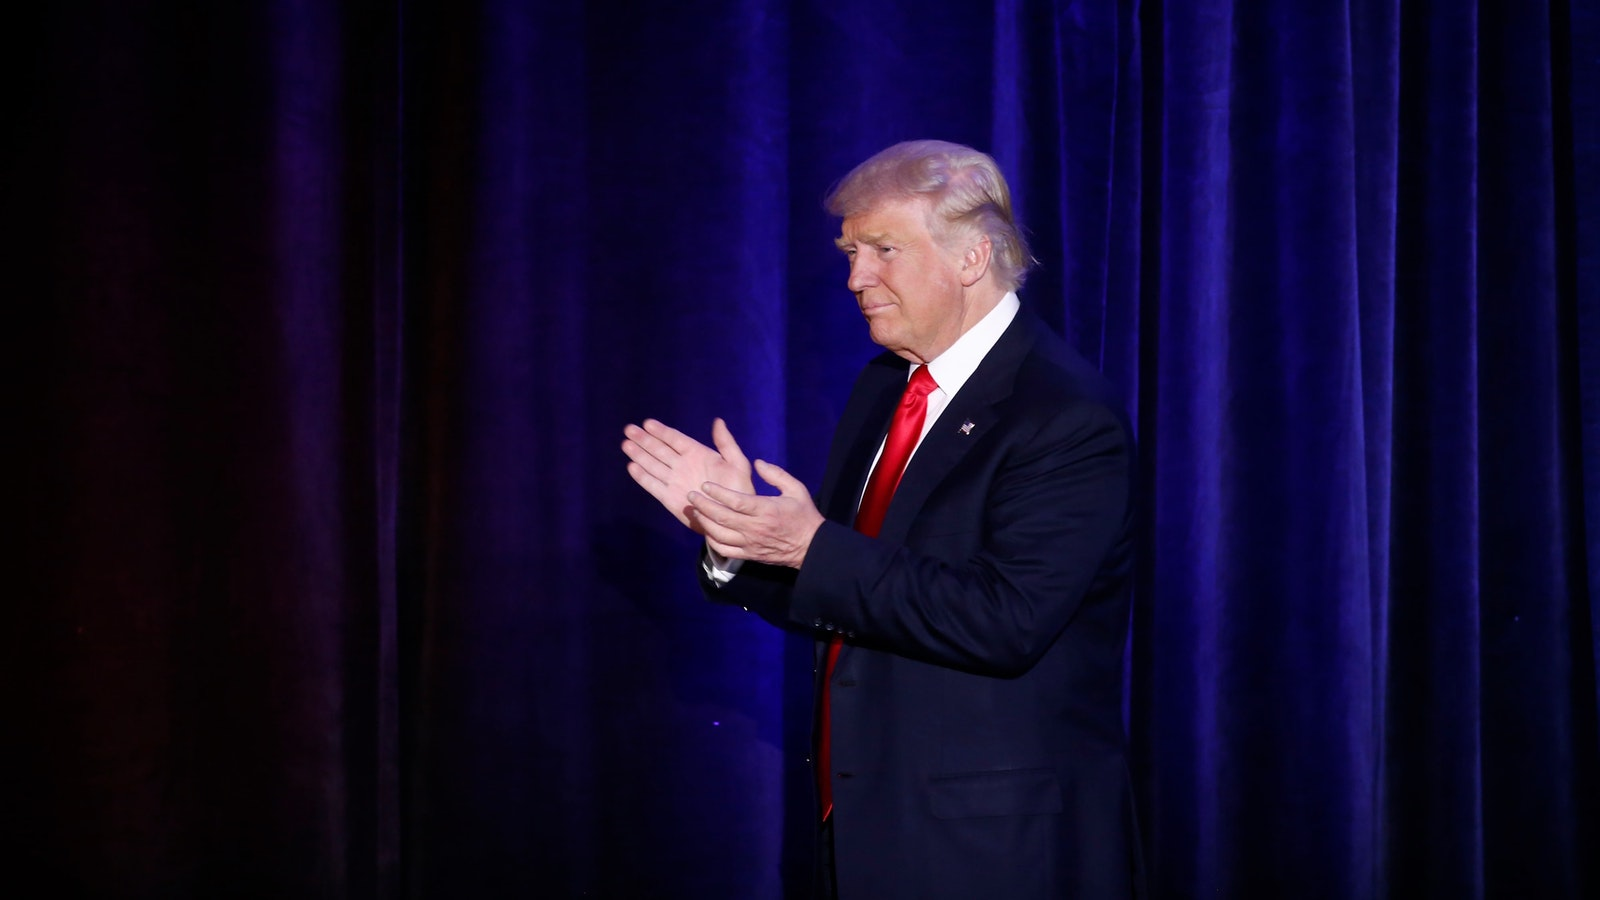 President-elect Trump arriving on stage during an election night party in New York on Tuesday night. Photo by Bloomberg.